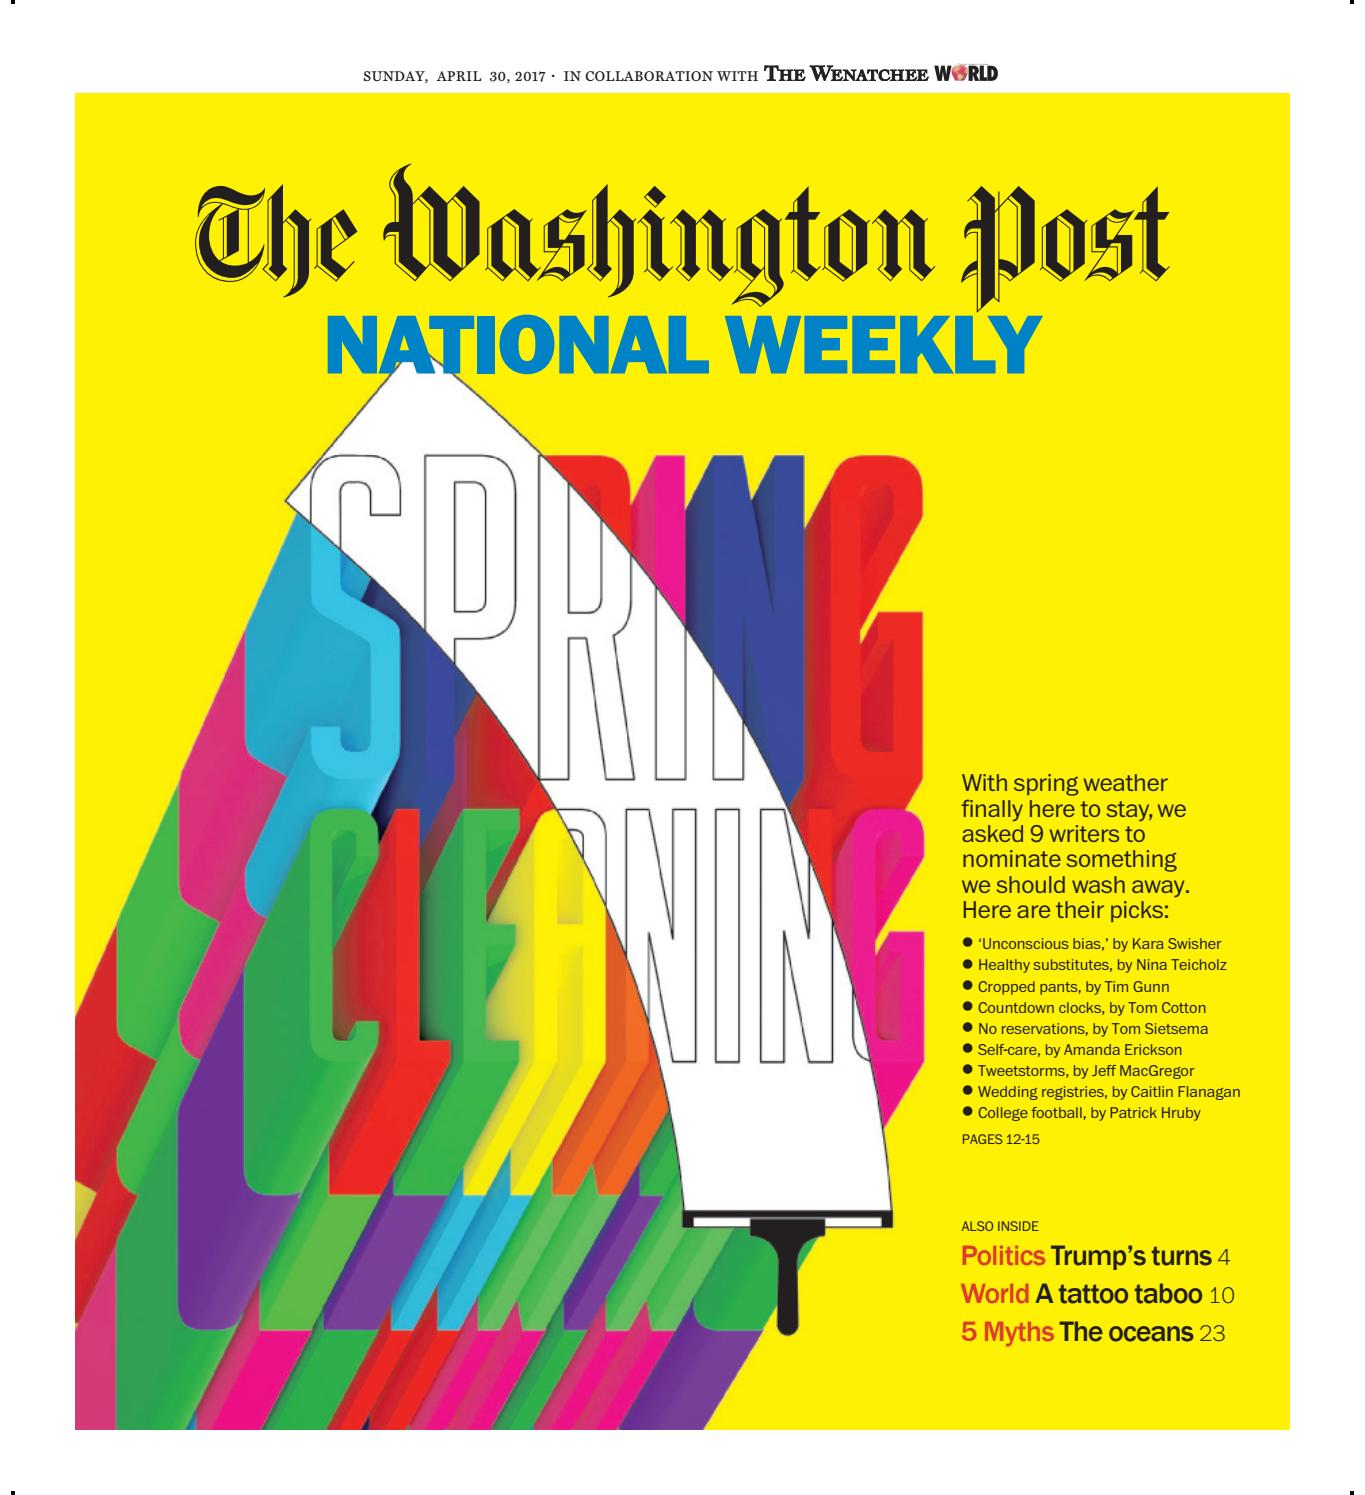 338f1ff36 The Washington Post National Weekly - April 30, 2017 by The ...